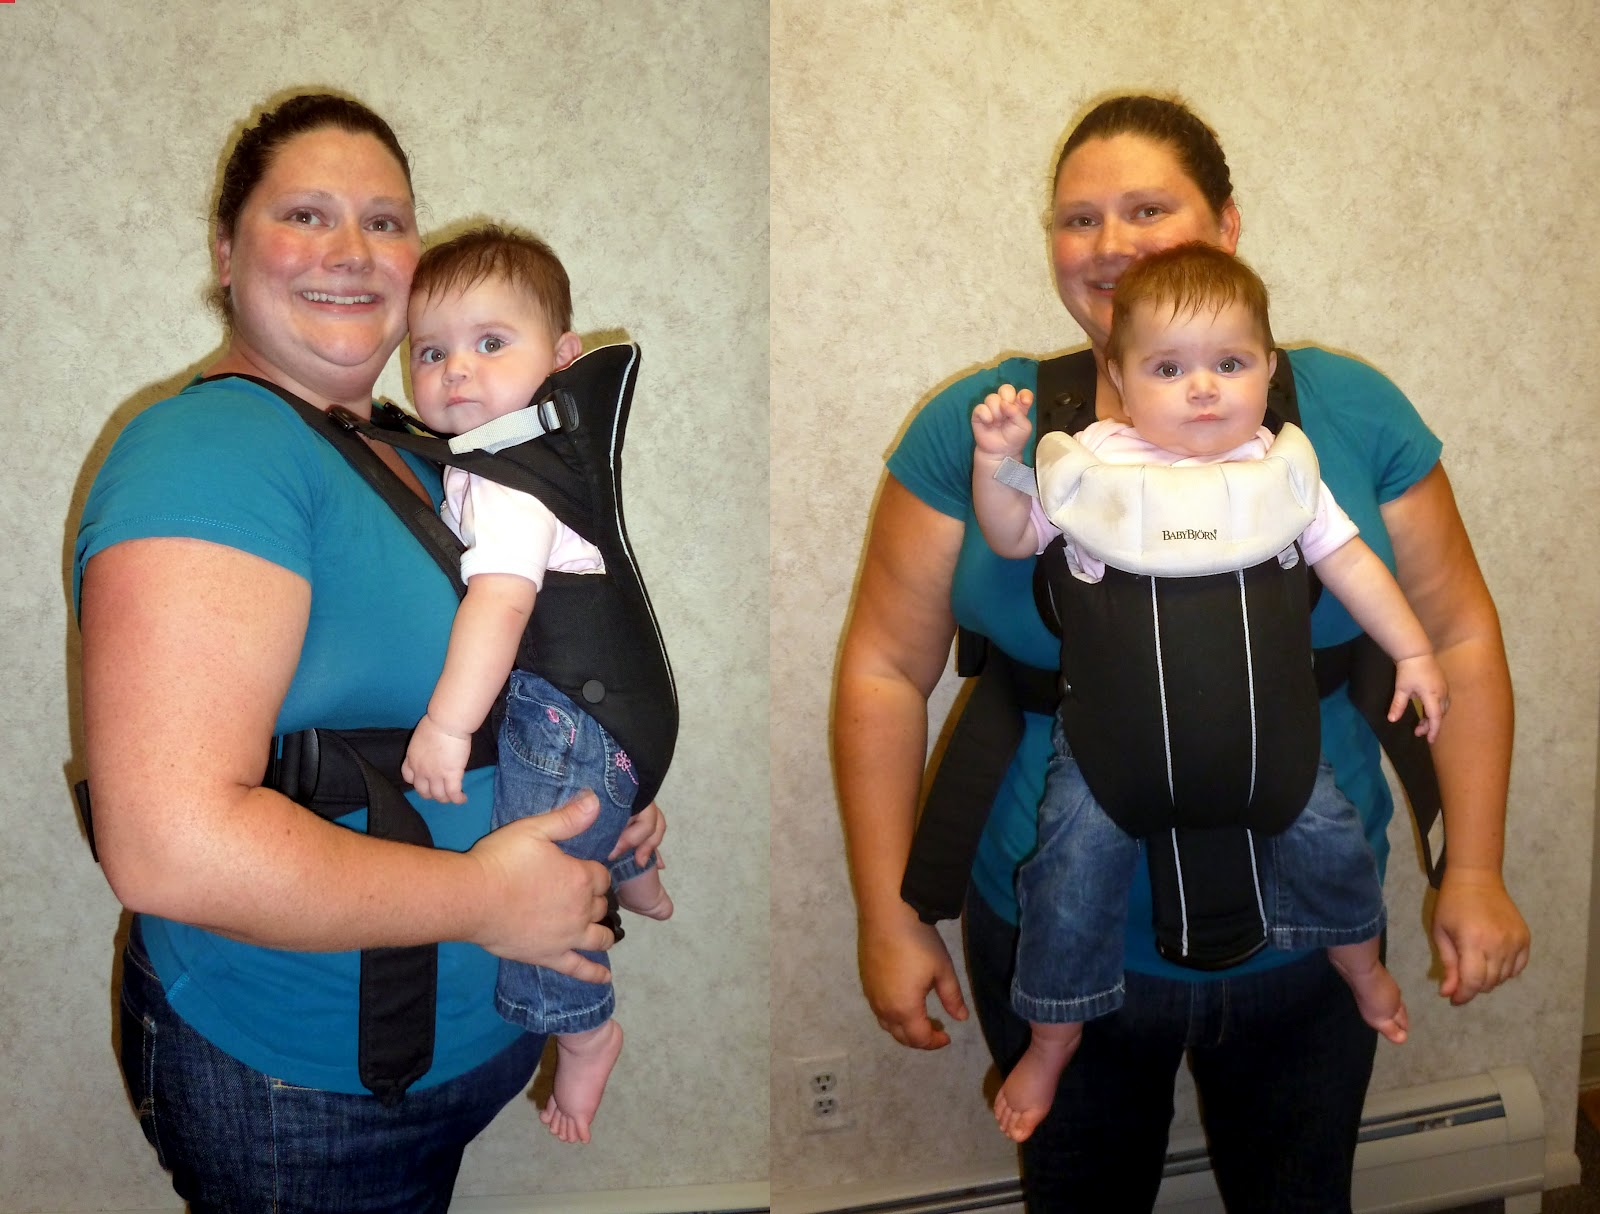 Baby Bjorn Vs Ergo Battle Of The Big Box Store Baby Carriers